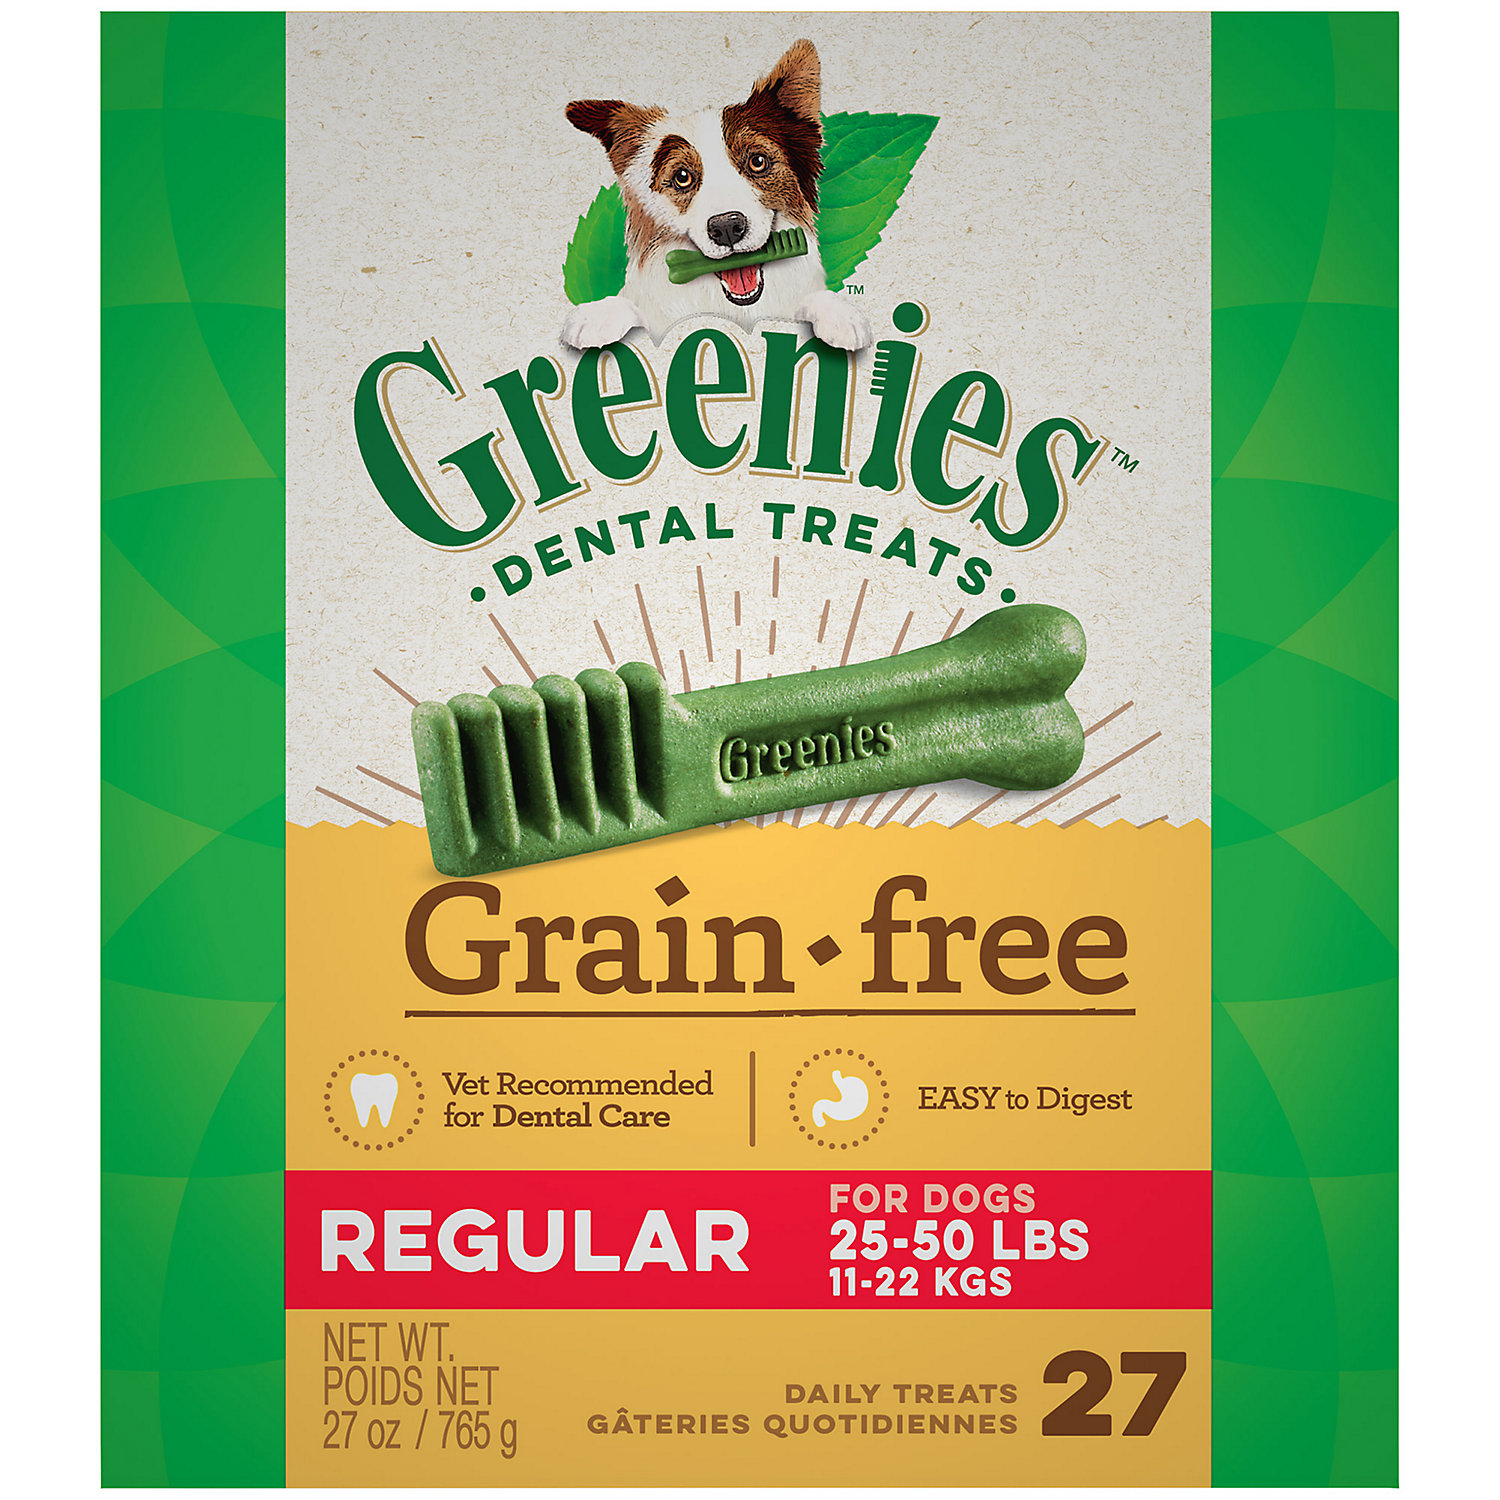 Greenies Grain Free Regular Dental Dog Treats 27 Oz.